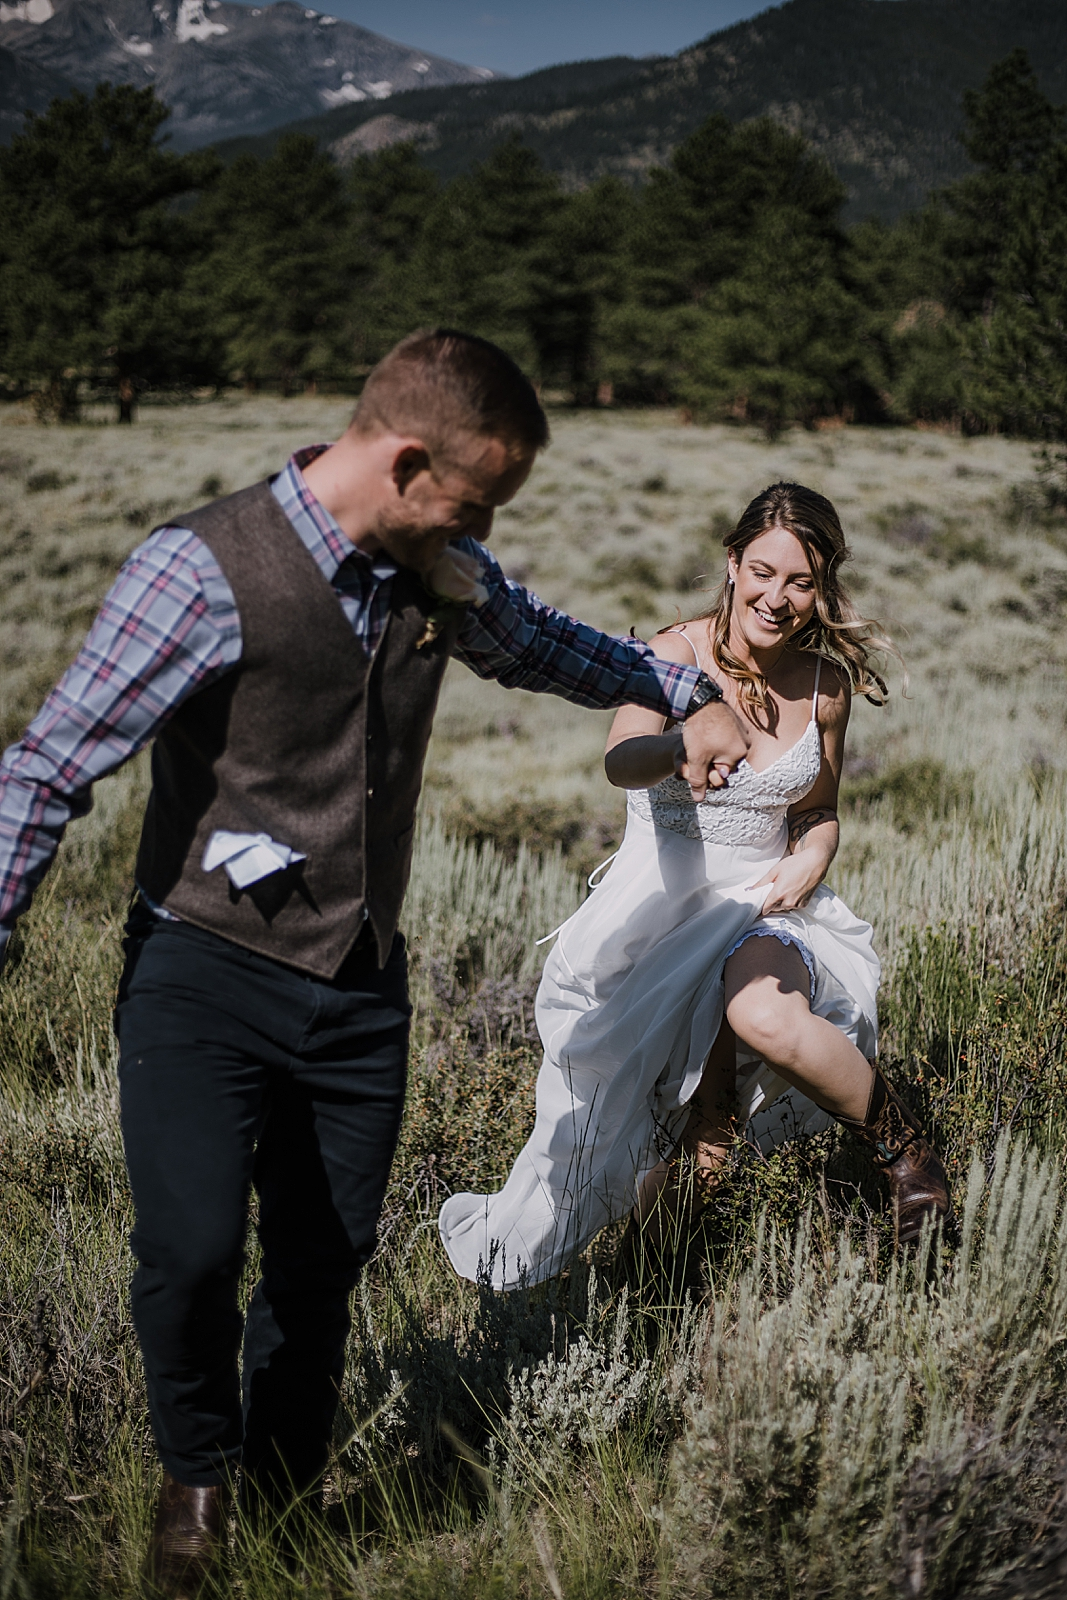 groom and bride running, RMNP elopement ceremony, rocky mountain national park elopement, 3M curves elopement, self solemnizing, self solemnization, long's peak, summer elopement, estes park elopement